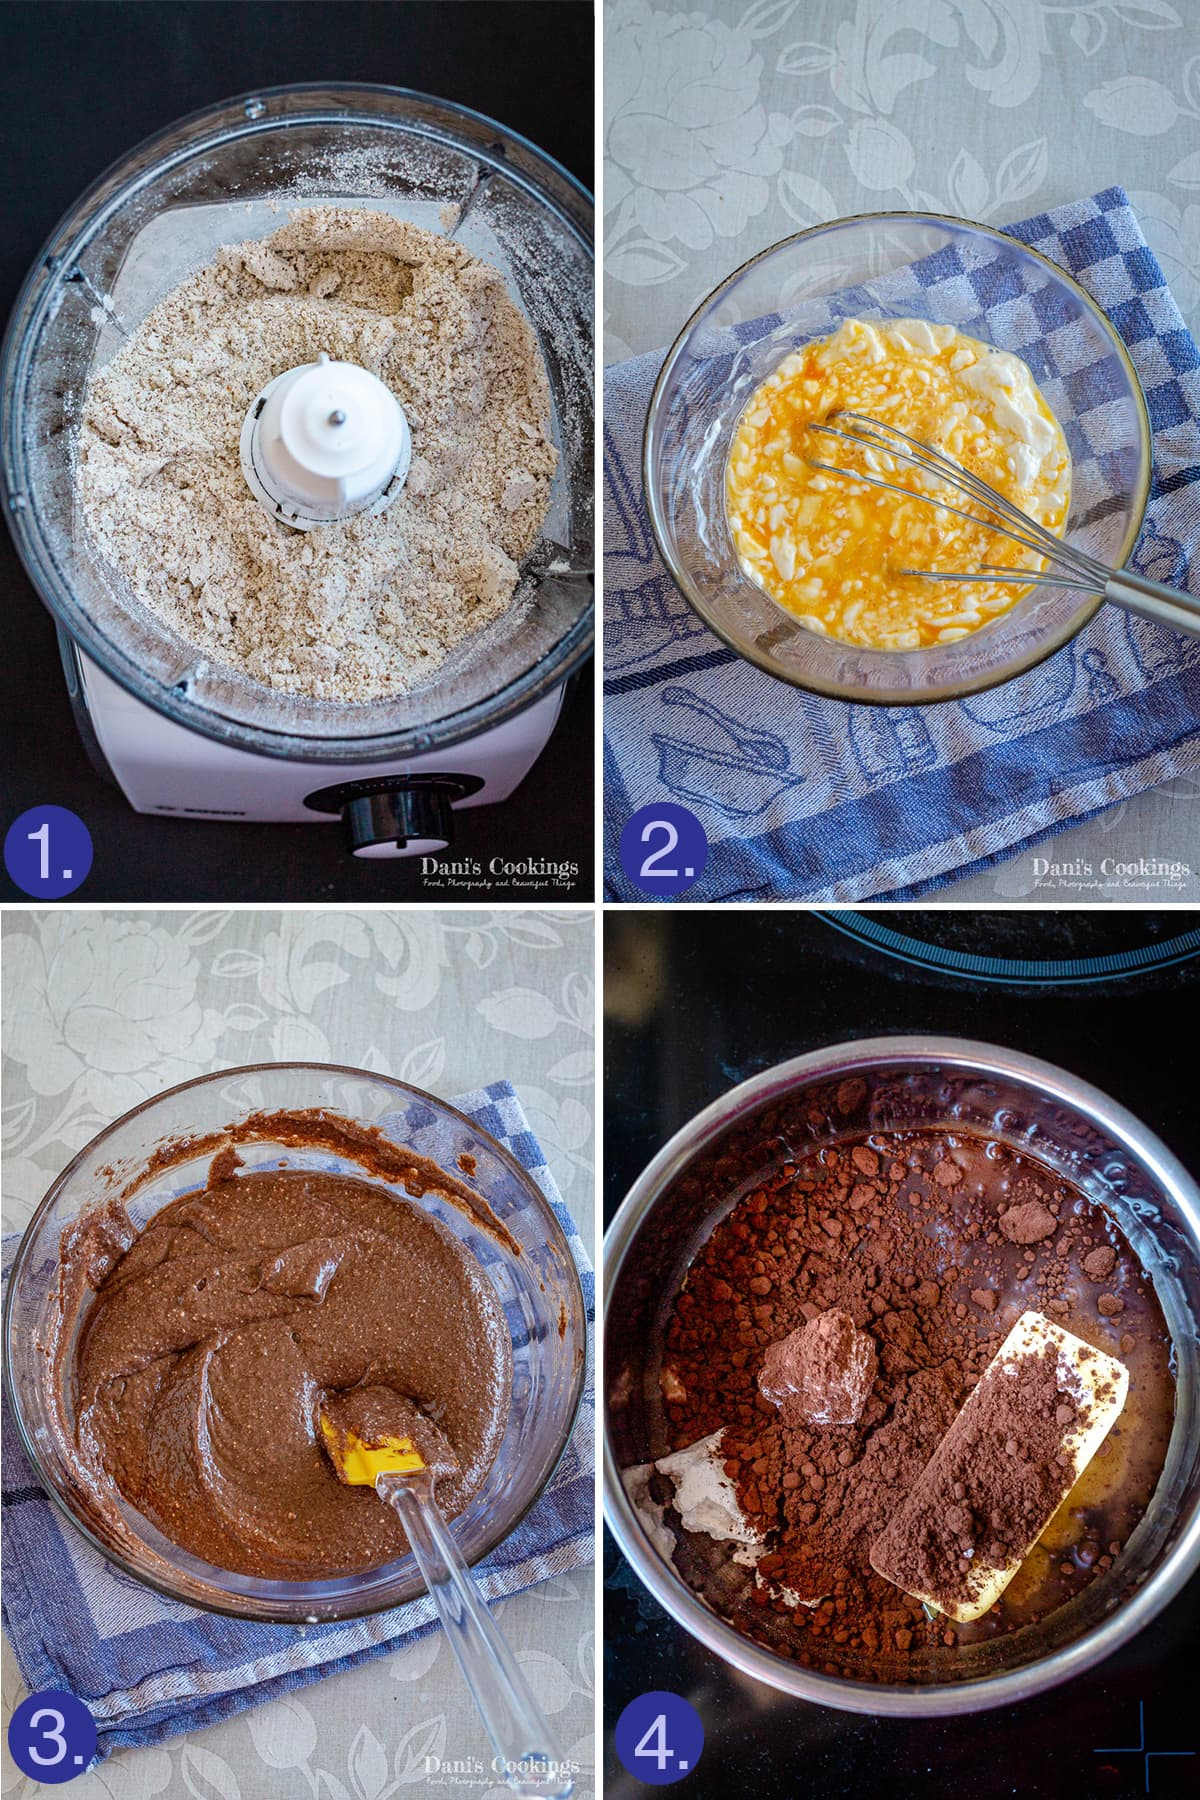 4 images: ground almonds, beaten eggs and sour cream, batter in a bowl and a pan with the glaze